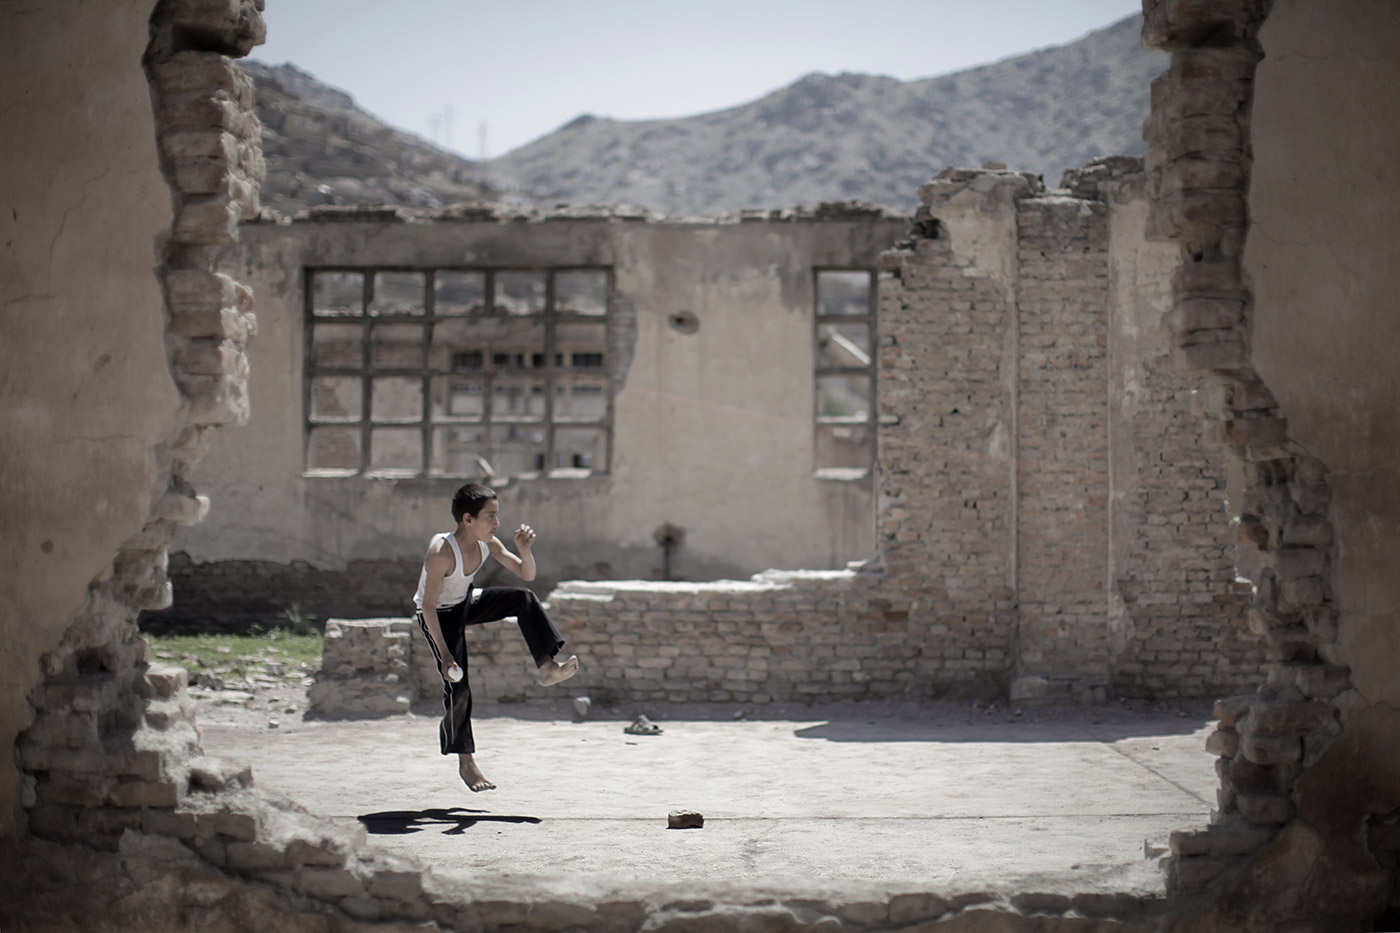 An Afghan boy runs up to bowl